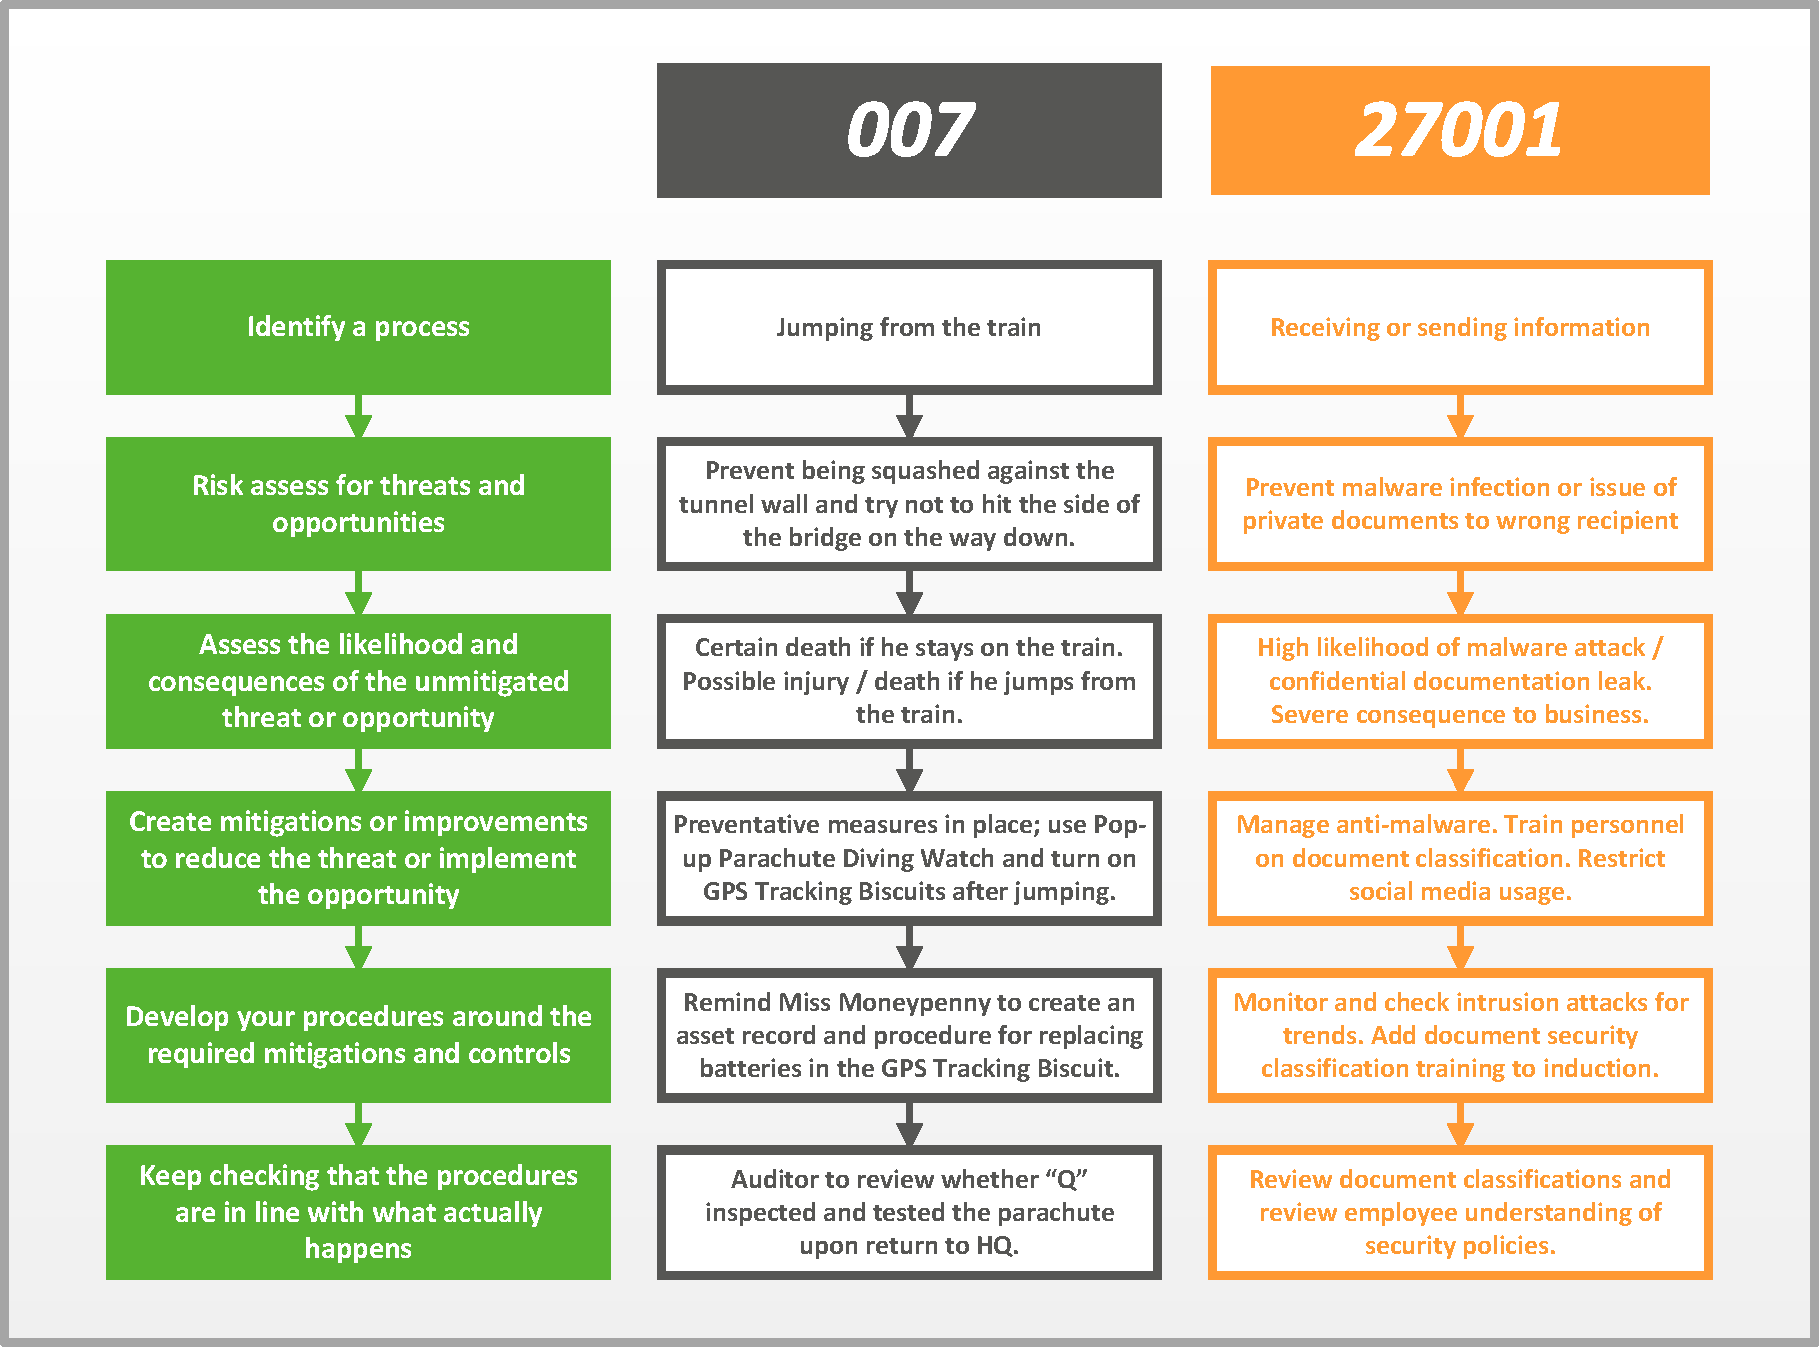 Iso 27001 Vs 007 What Do Information Security And James